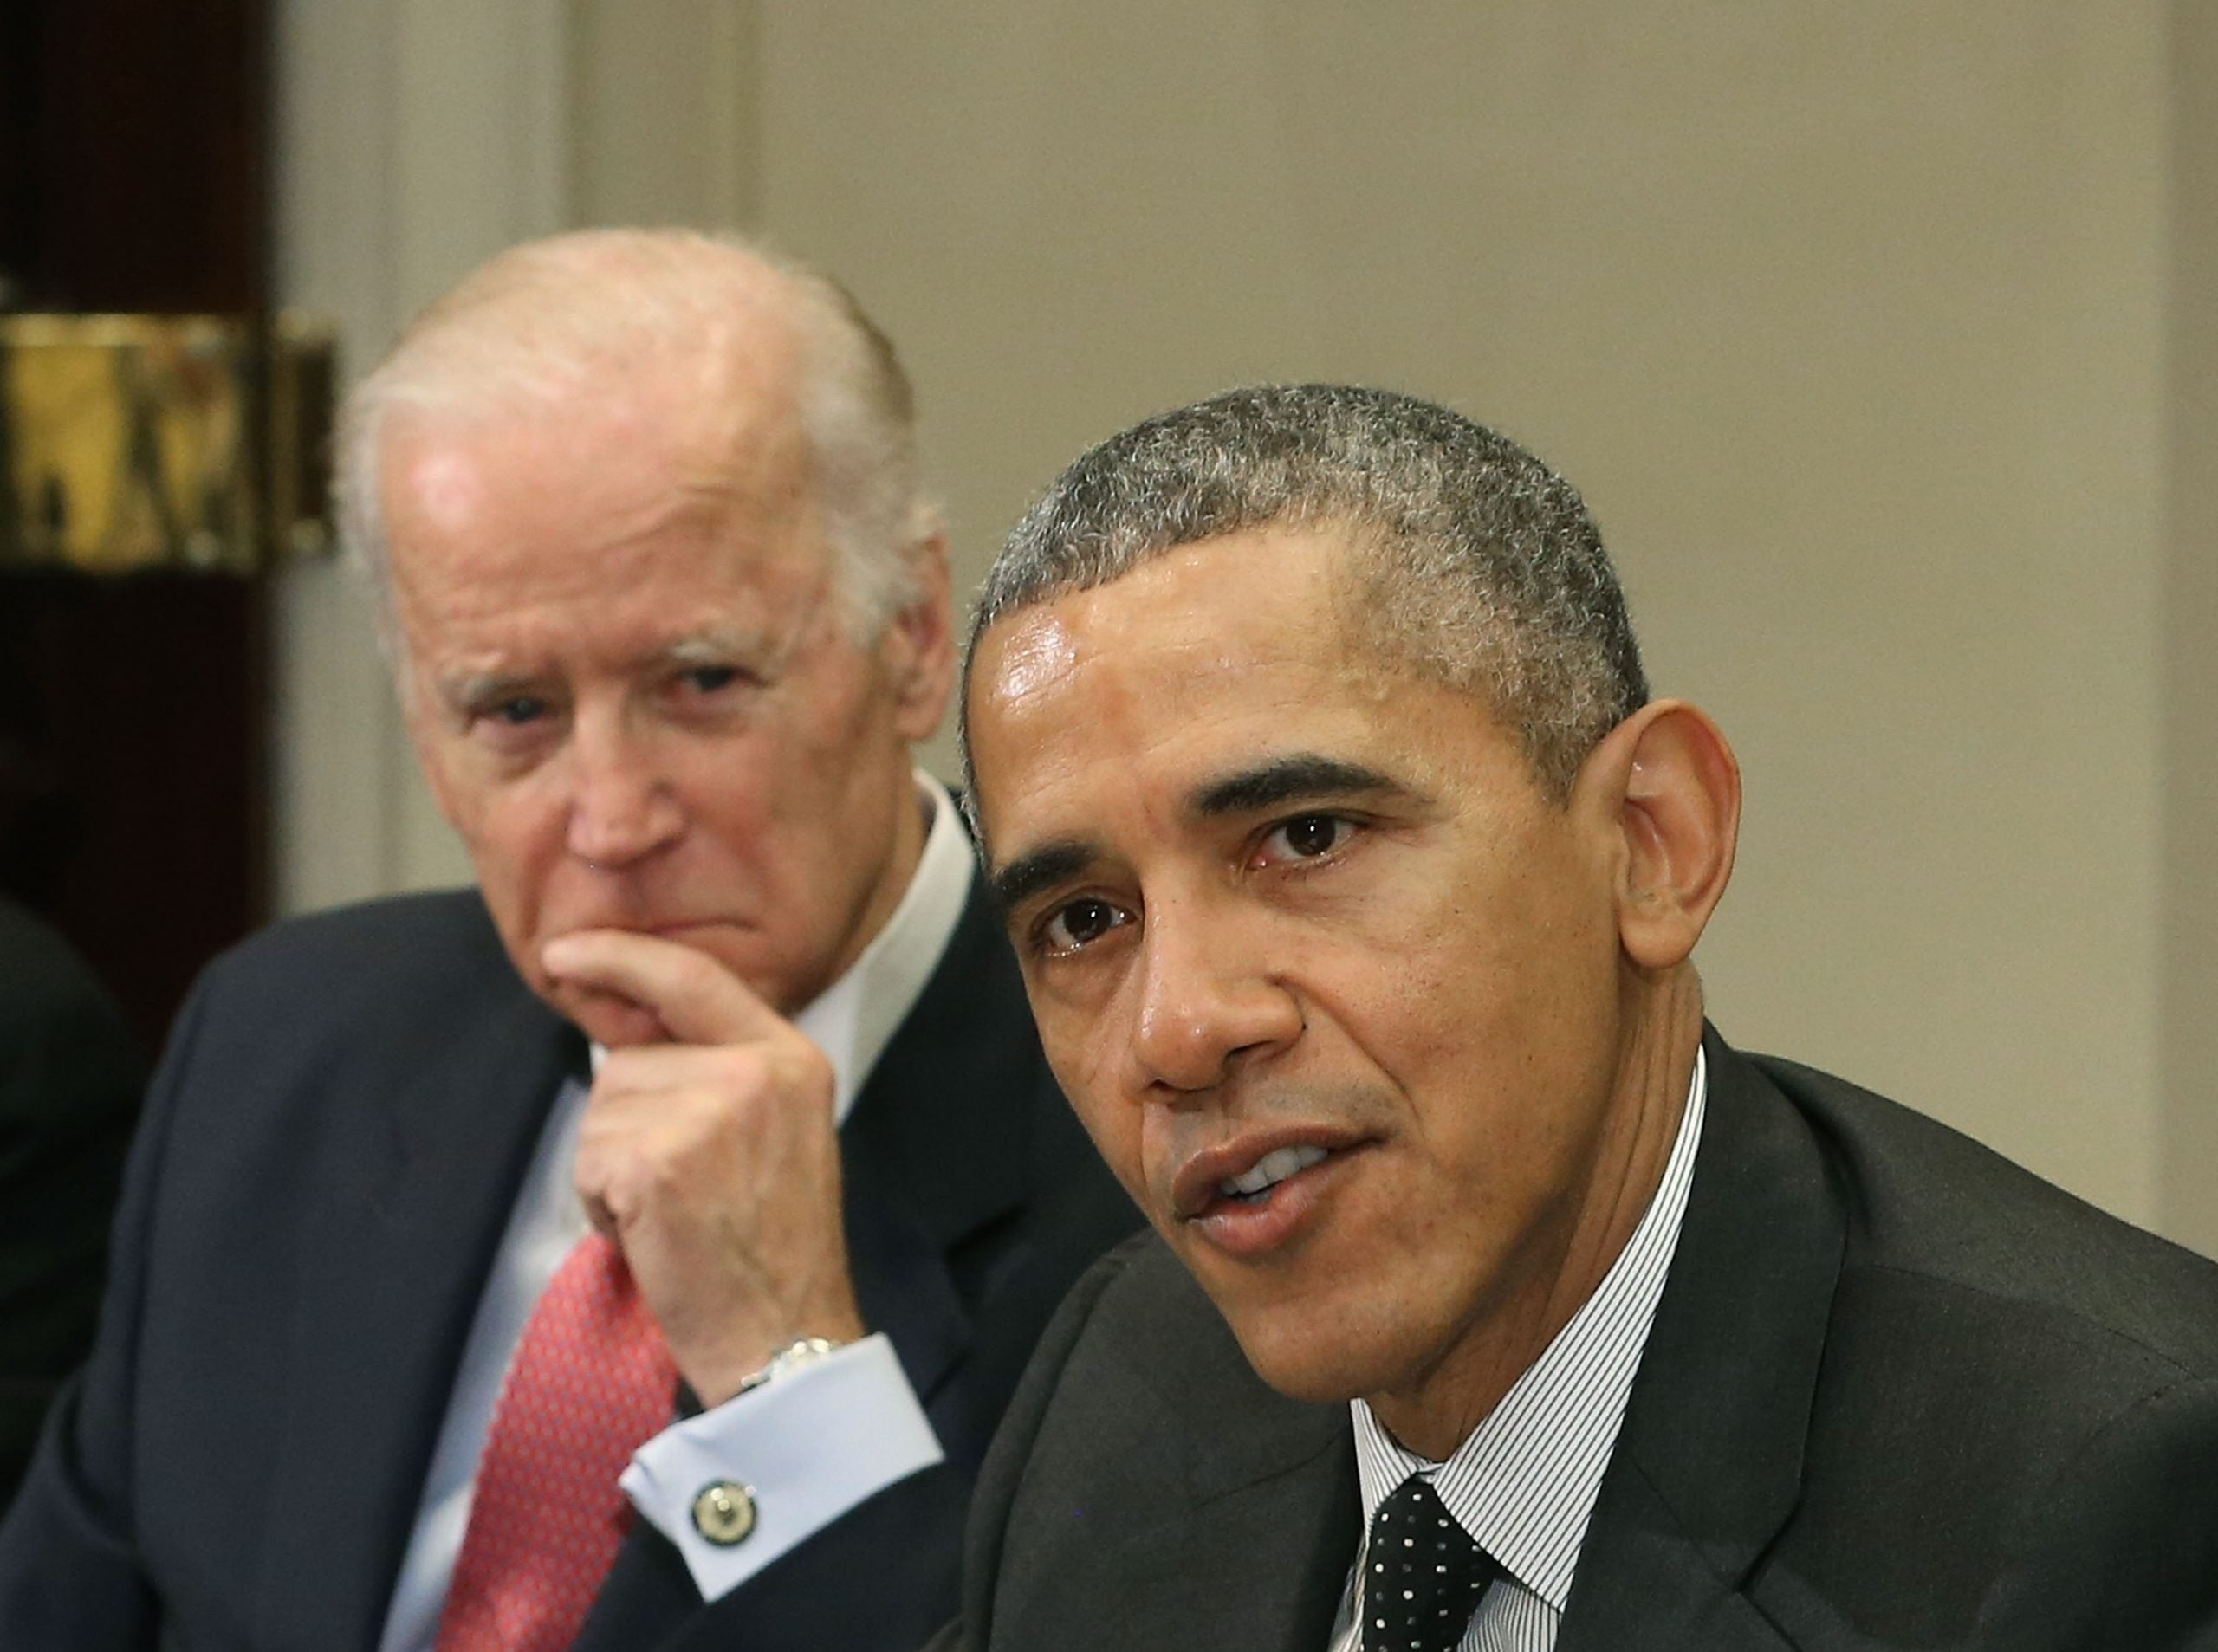 Barack Obama endorsed Joe Biden on Tuesday